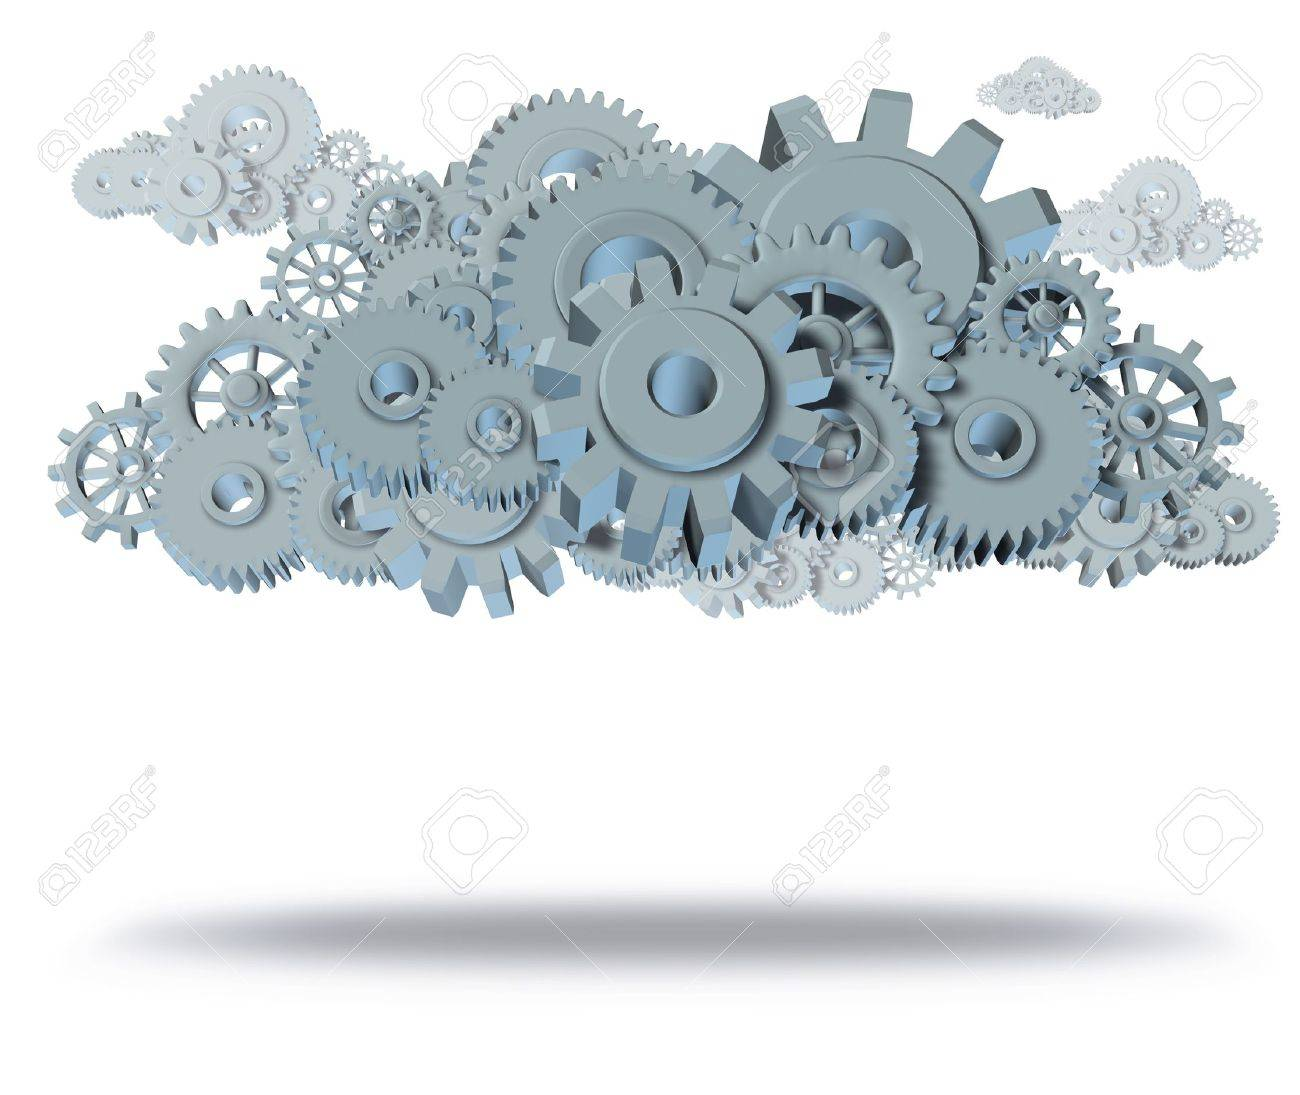 cloud computing symbol representing servers virtual apps for computers and mobile devices featuring gears and cogs isolated on white with shadow. Stock Photo - 10542721